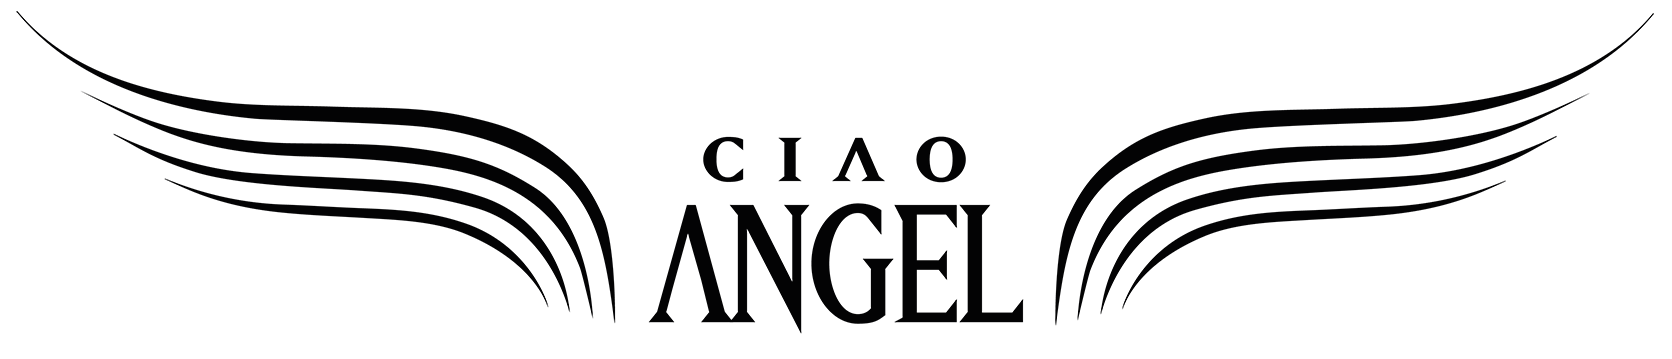 Angel logo png. Merci collection archives ciao